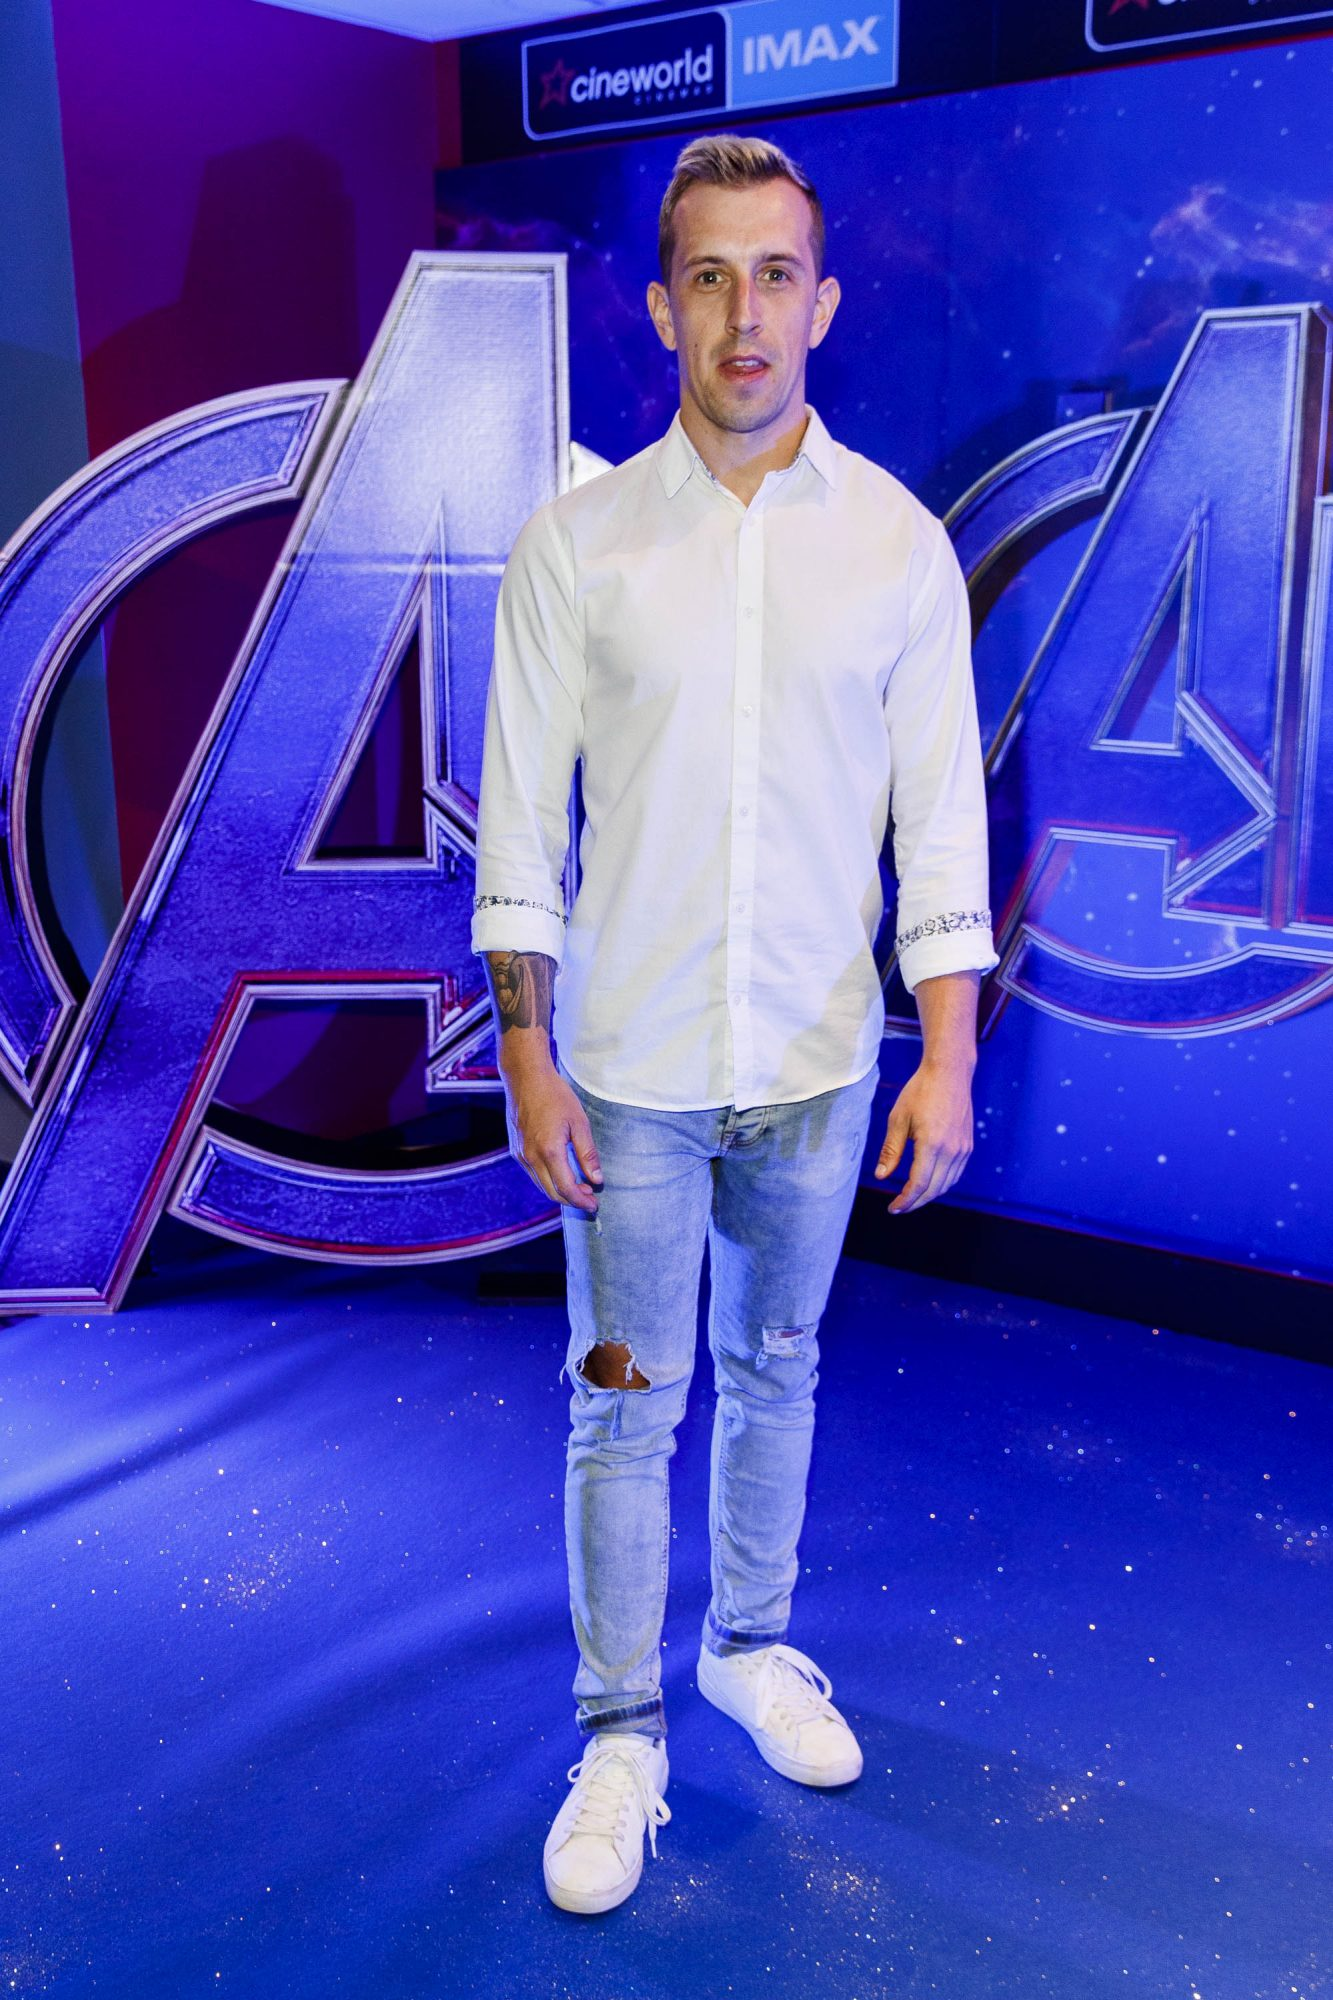 Luke O'Faolain pictured at the special preview screening of Marvel Studios' Avengers: Endgame at Cineworld Dublin. Picture by: Andres Poveda